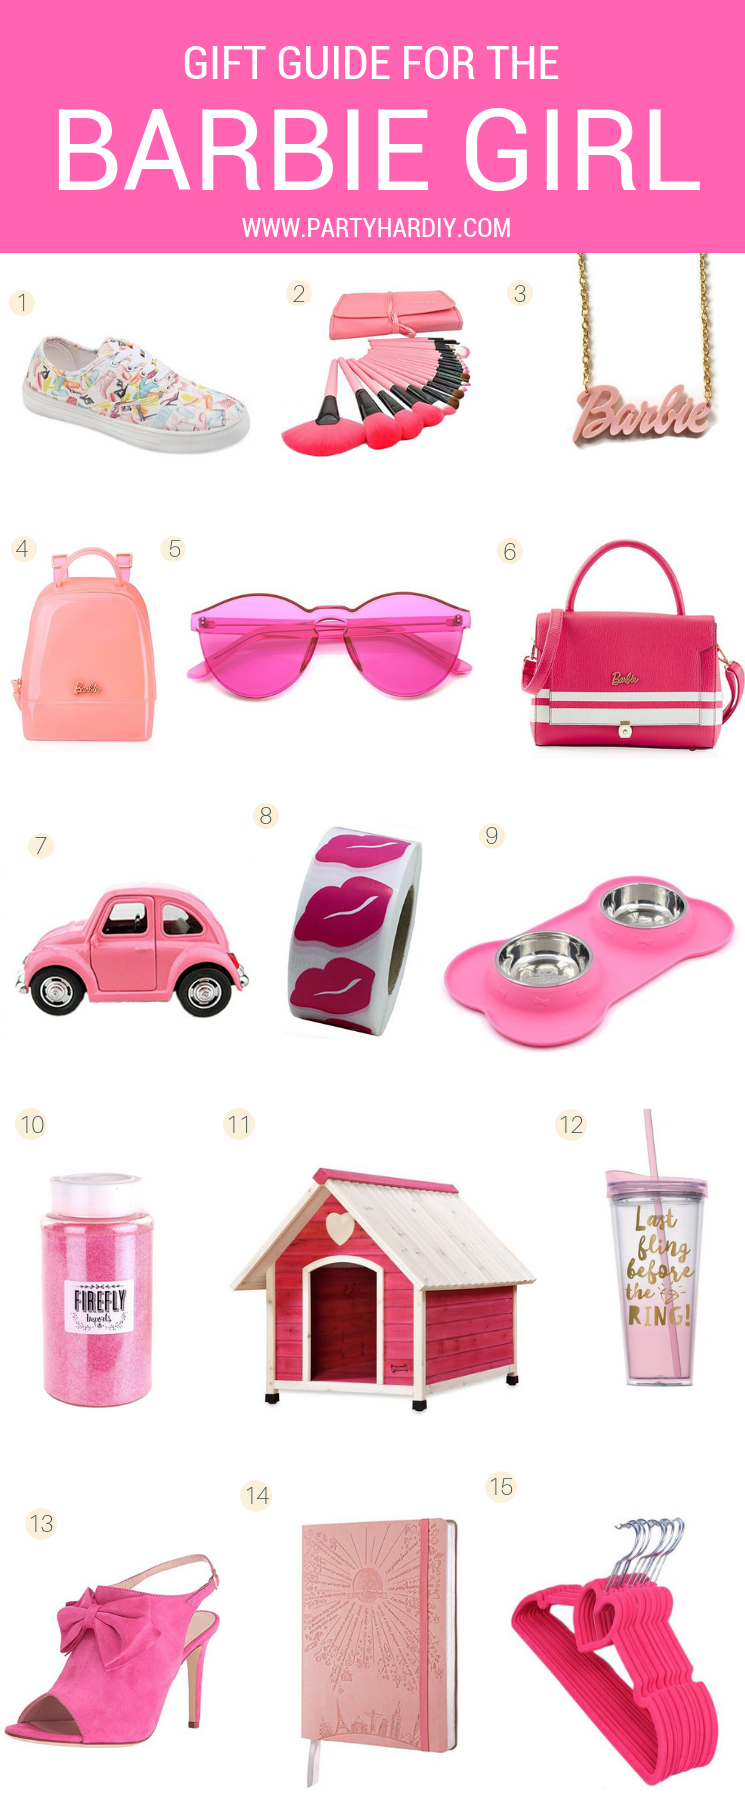 Make your life a little more Barbie Pink with these awesome items! You've got barbie shoes, pet care, and even closet organization! We could all use a little more glam in our lives. #barbieshoes #barbieclothes #shoppinglists